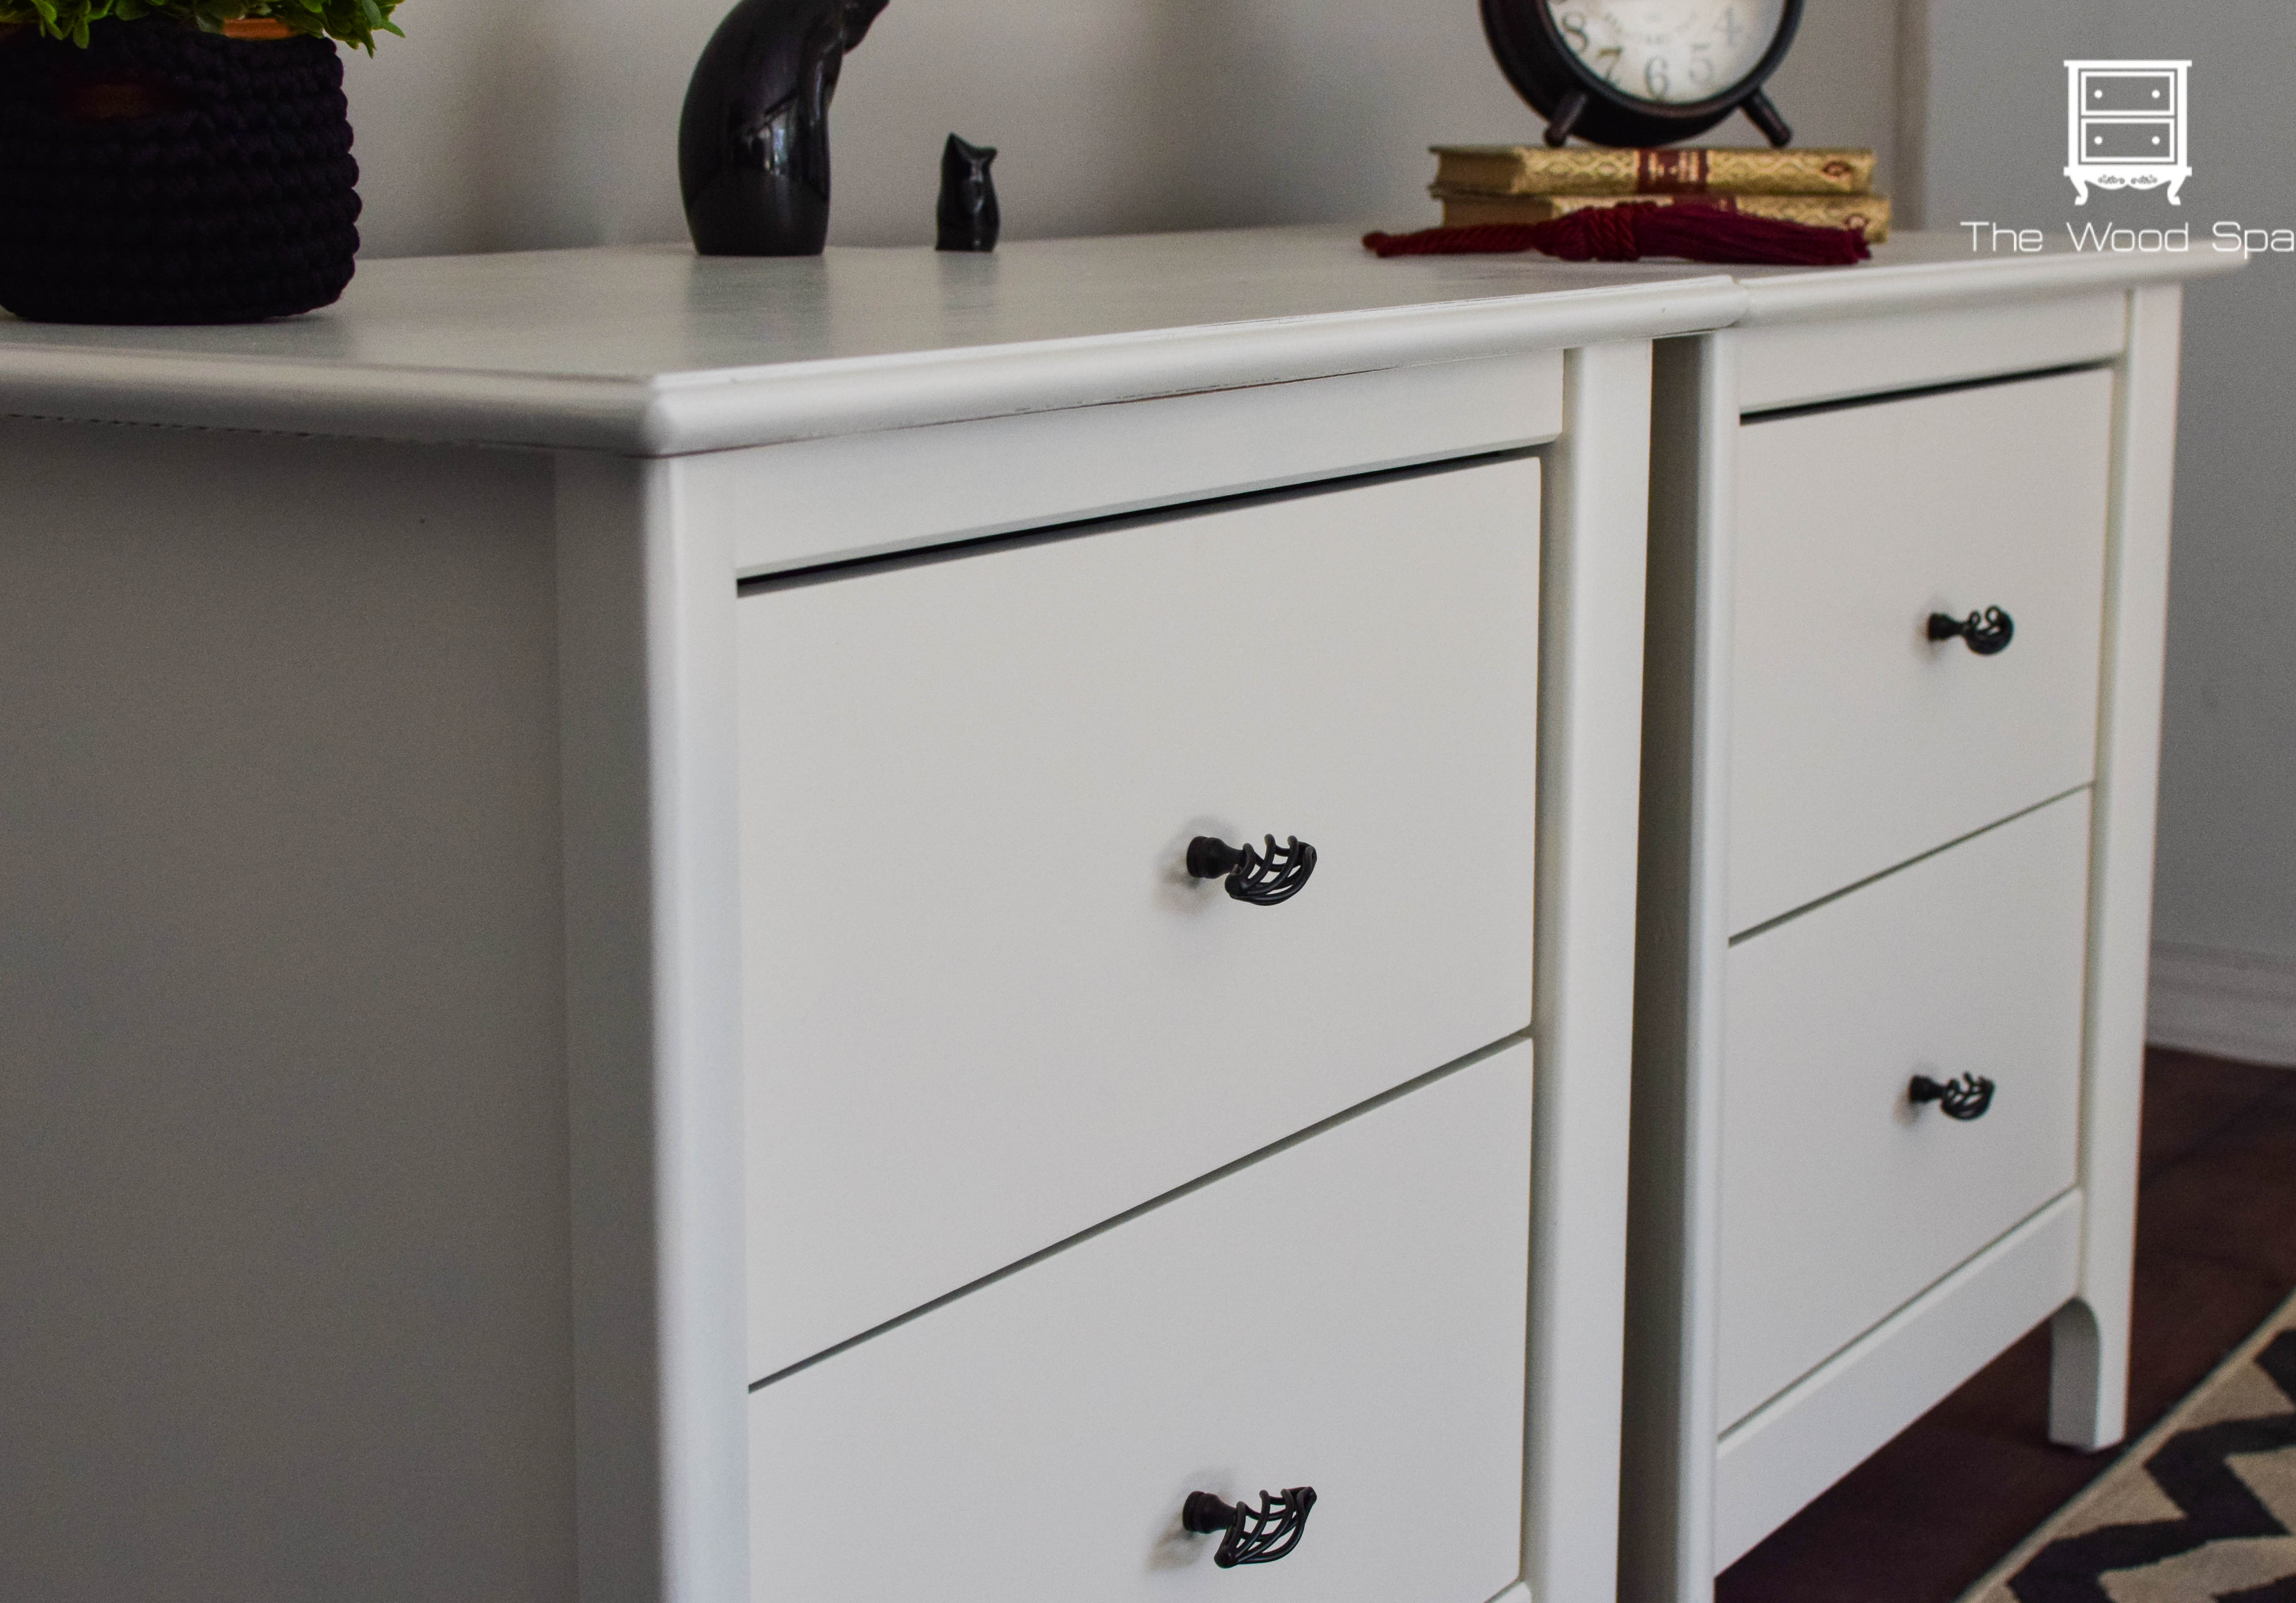 Dsc also dresser and nightstands with valspar furniture paint again  the rh thewoodspa